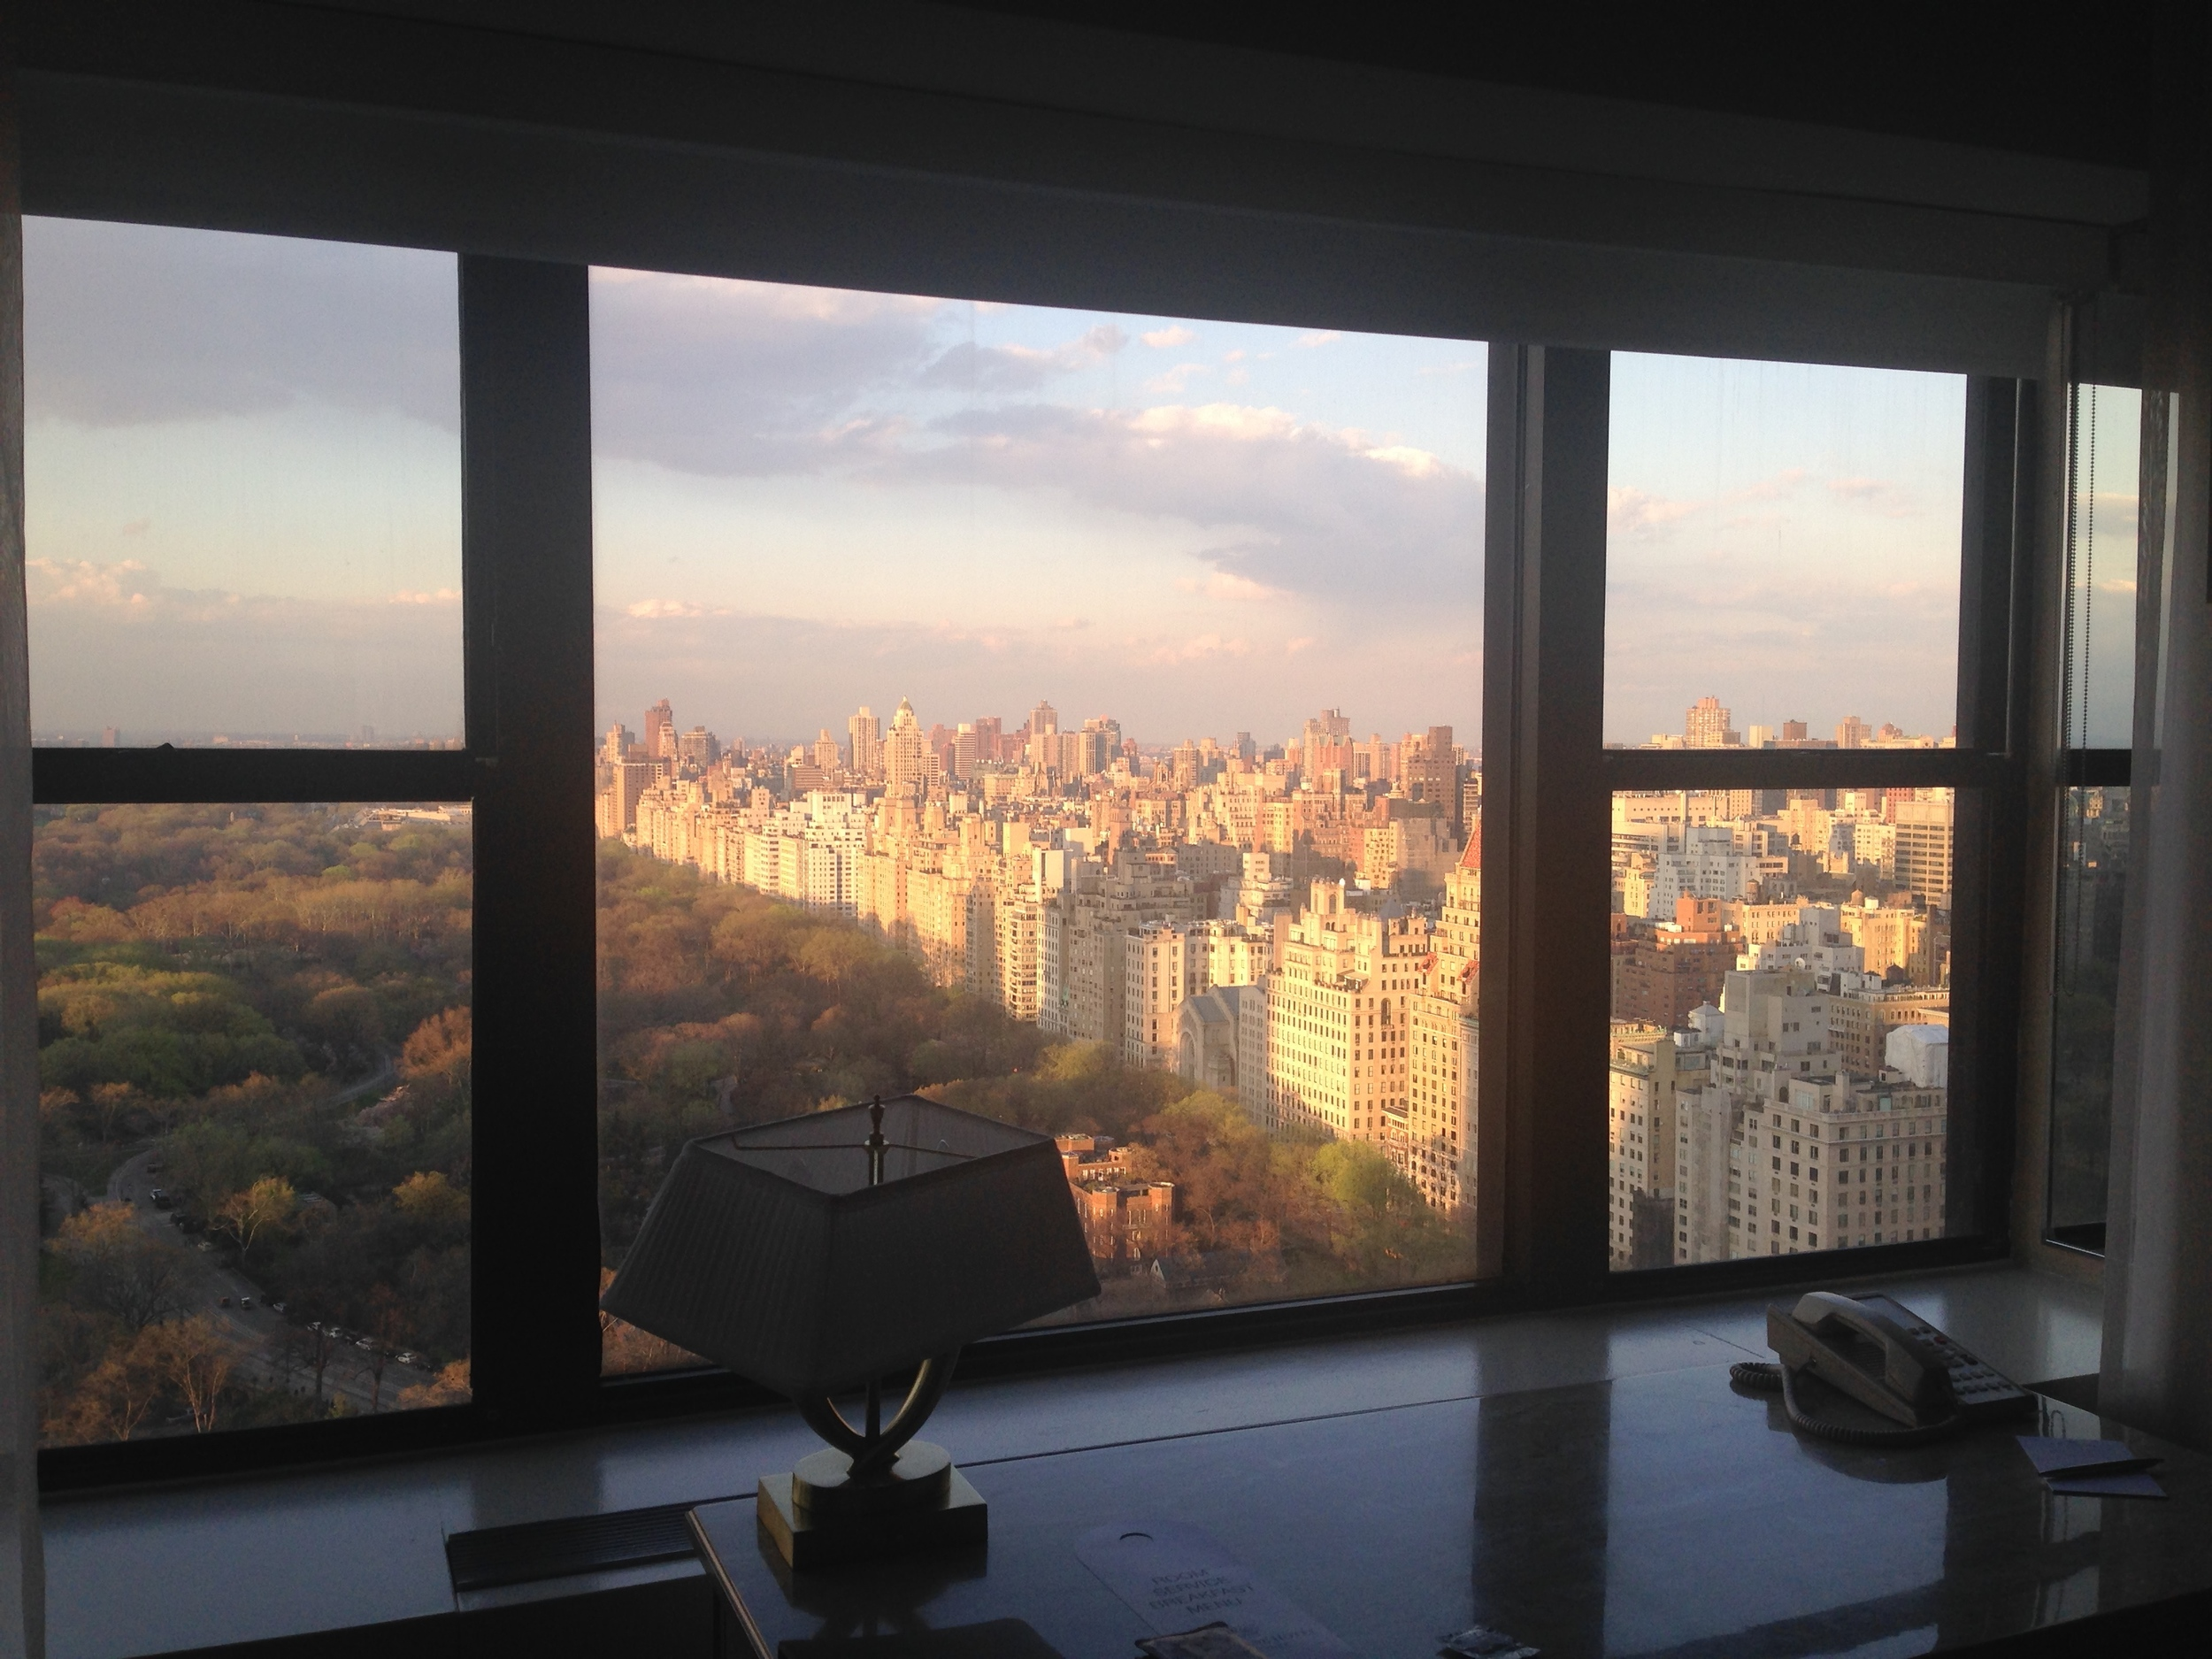 The view from our little retreat overlooking Central Park.